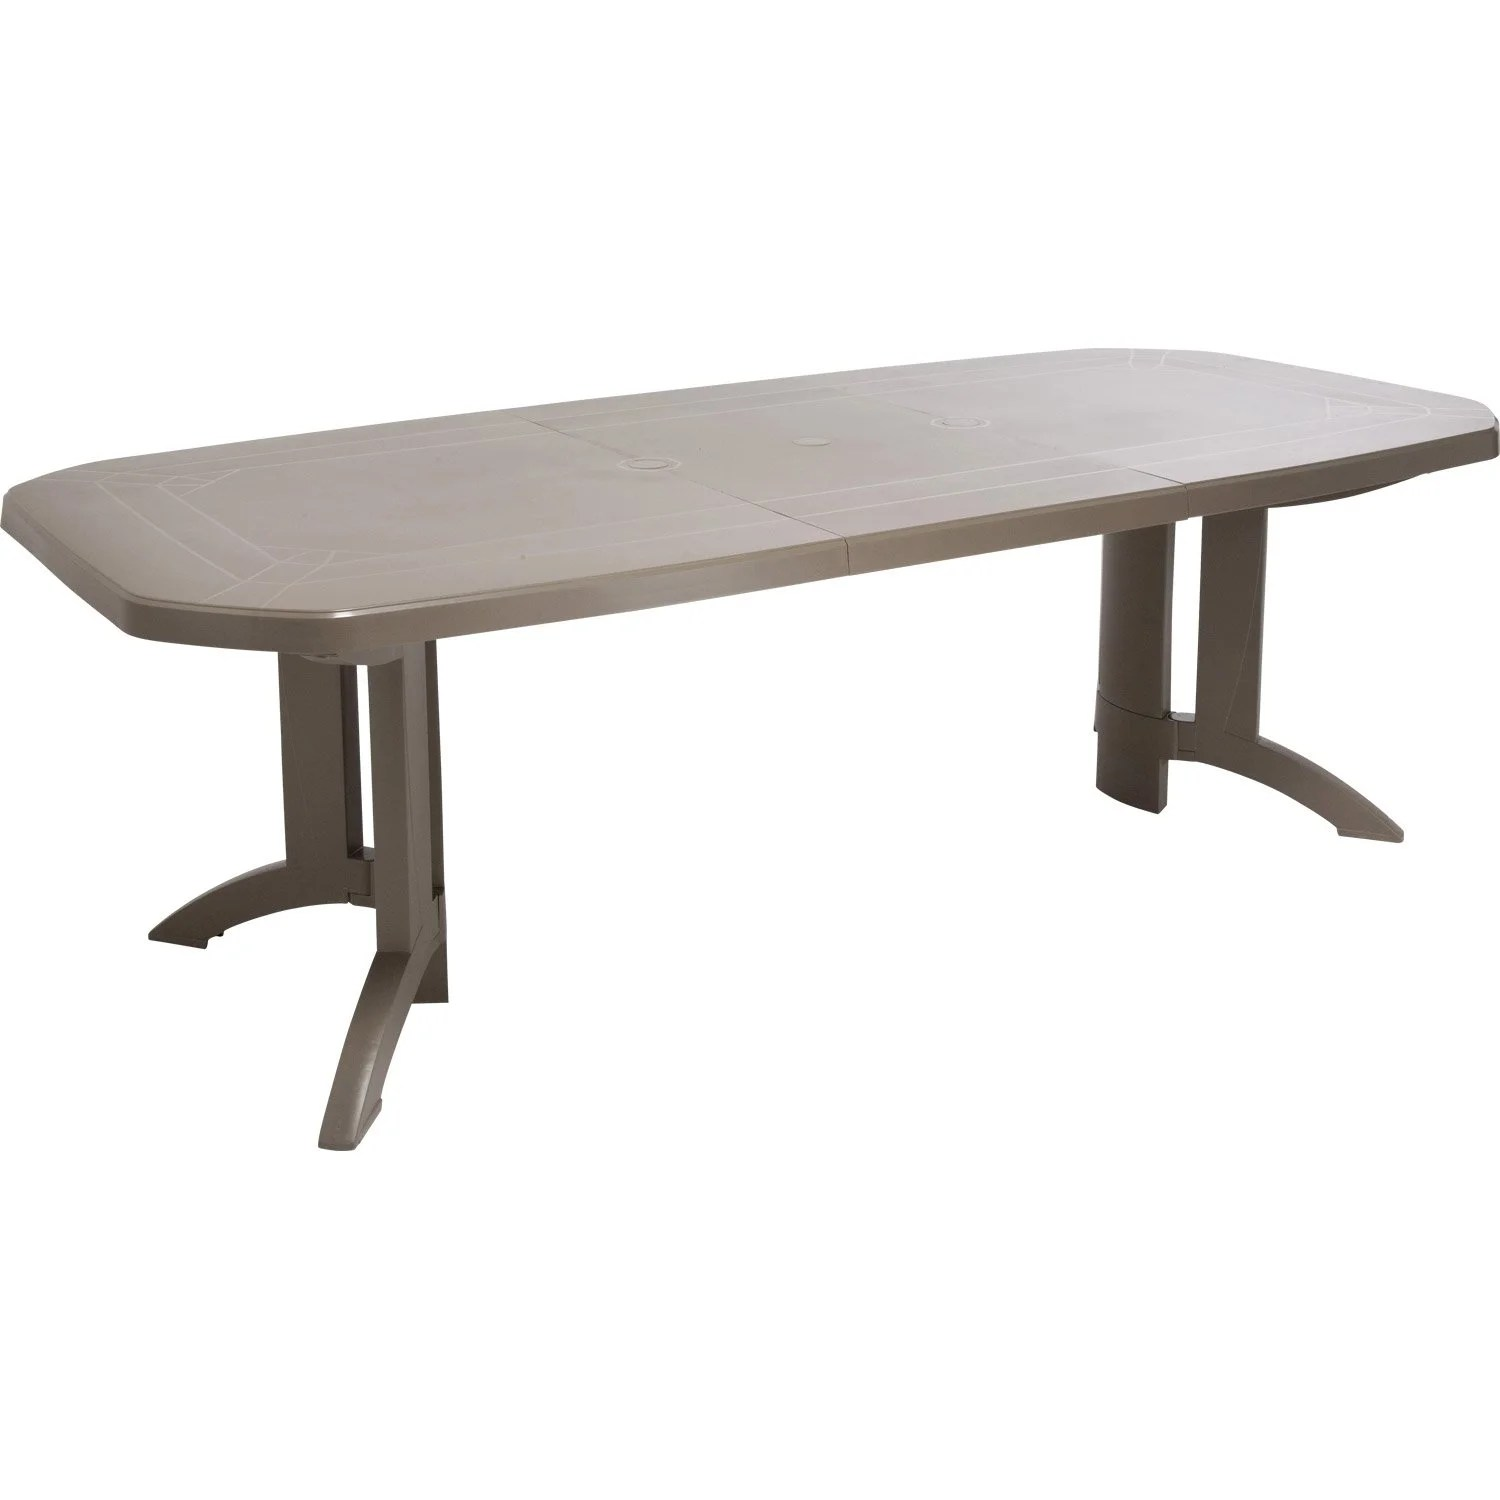 Table Fer Jardin Table De Jardin Grosfillex Véga Rectangulaire Taupe 10